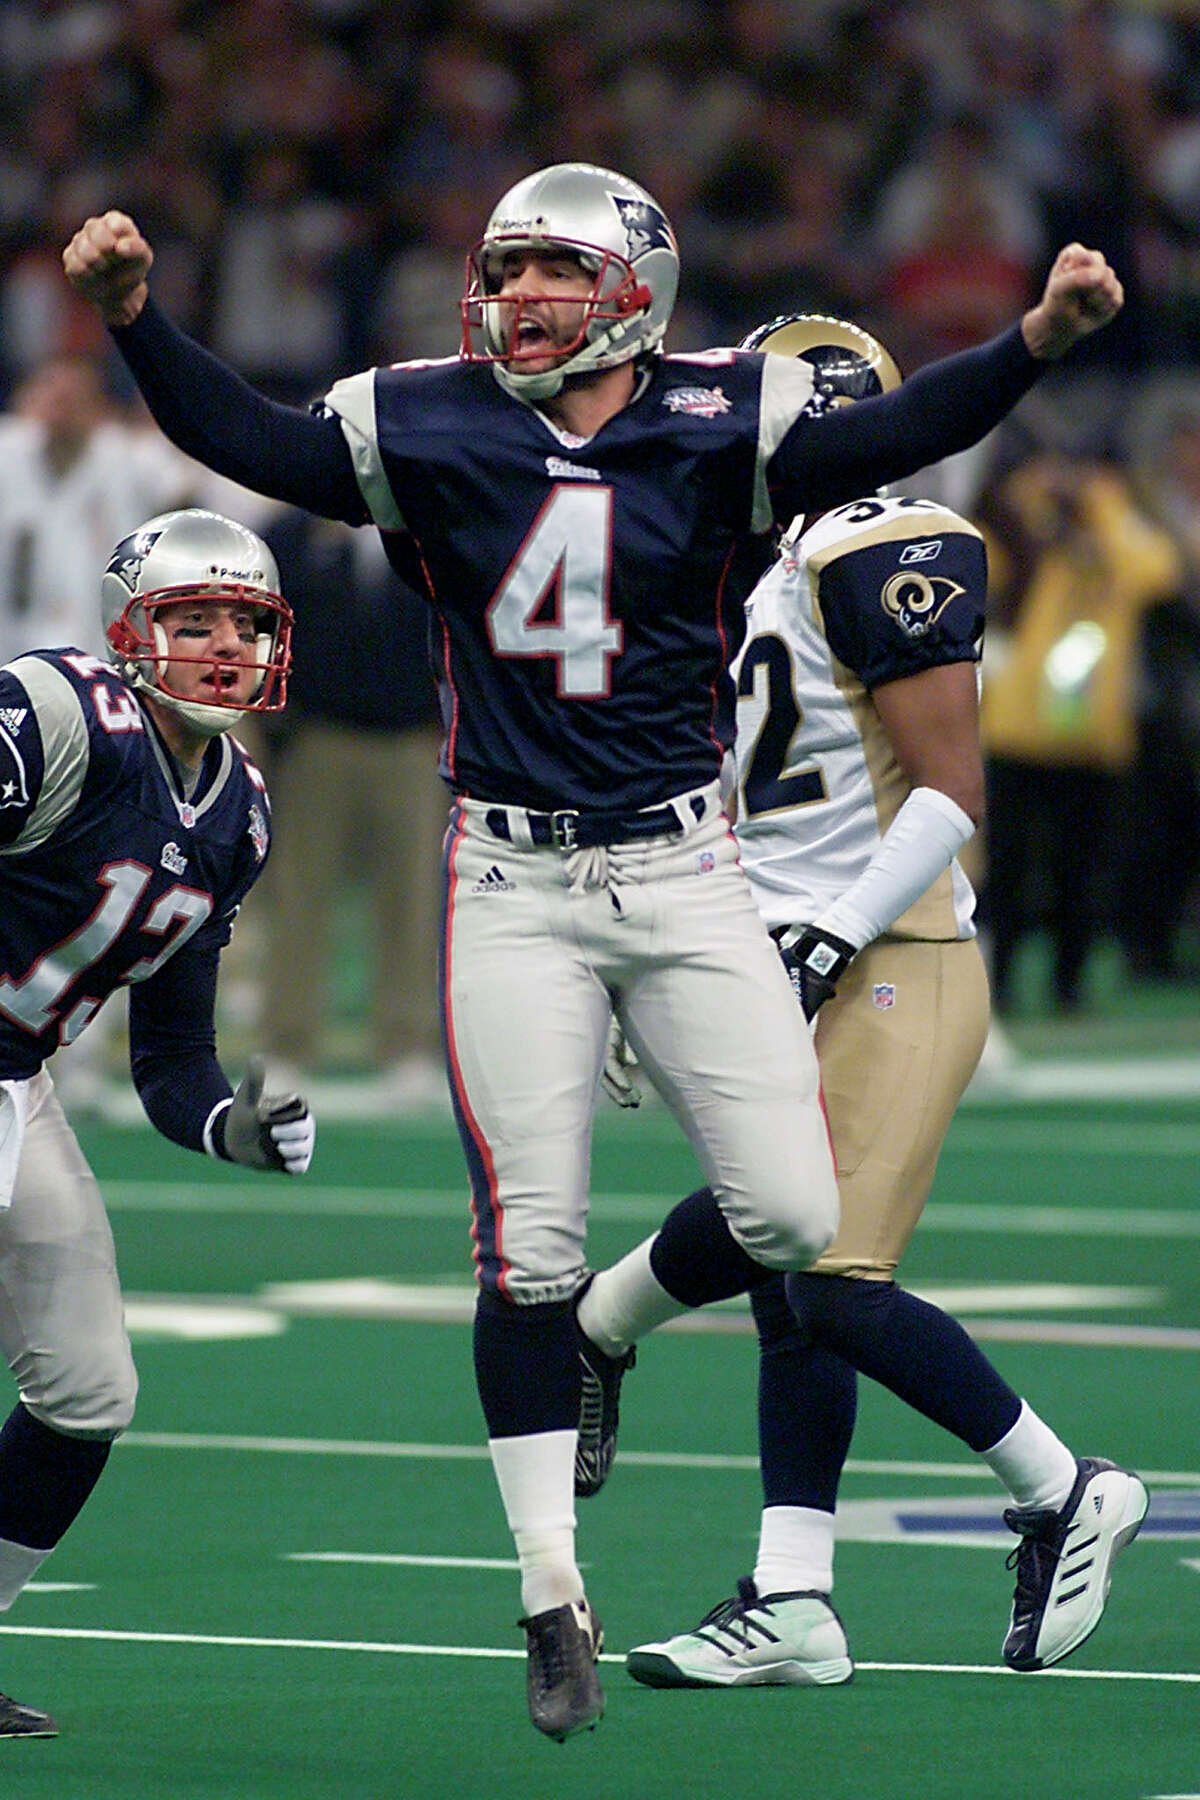 NEW ORLEANS, UNITED STATES: New England Patriots' kicker Adam Vinatieri (4) celebrates his game winning field goal in the second half 03 February, 2002 at Super Bowl XXXVI in New Orleans, Louisiana. The Patriots defeated the St. Louis Rams 20-17 for the NFL championship. AFP PHOTO/Timothy A. CLARY (Photo credit should read TIMOTHY A. CLARY/AFP/Getty Images)